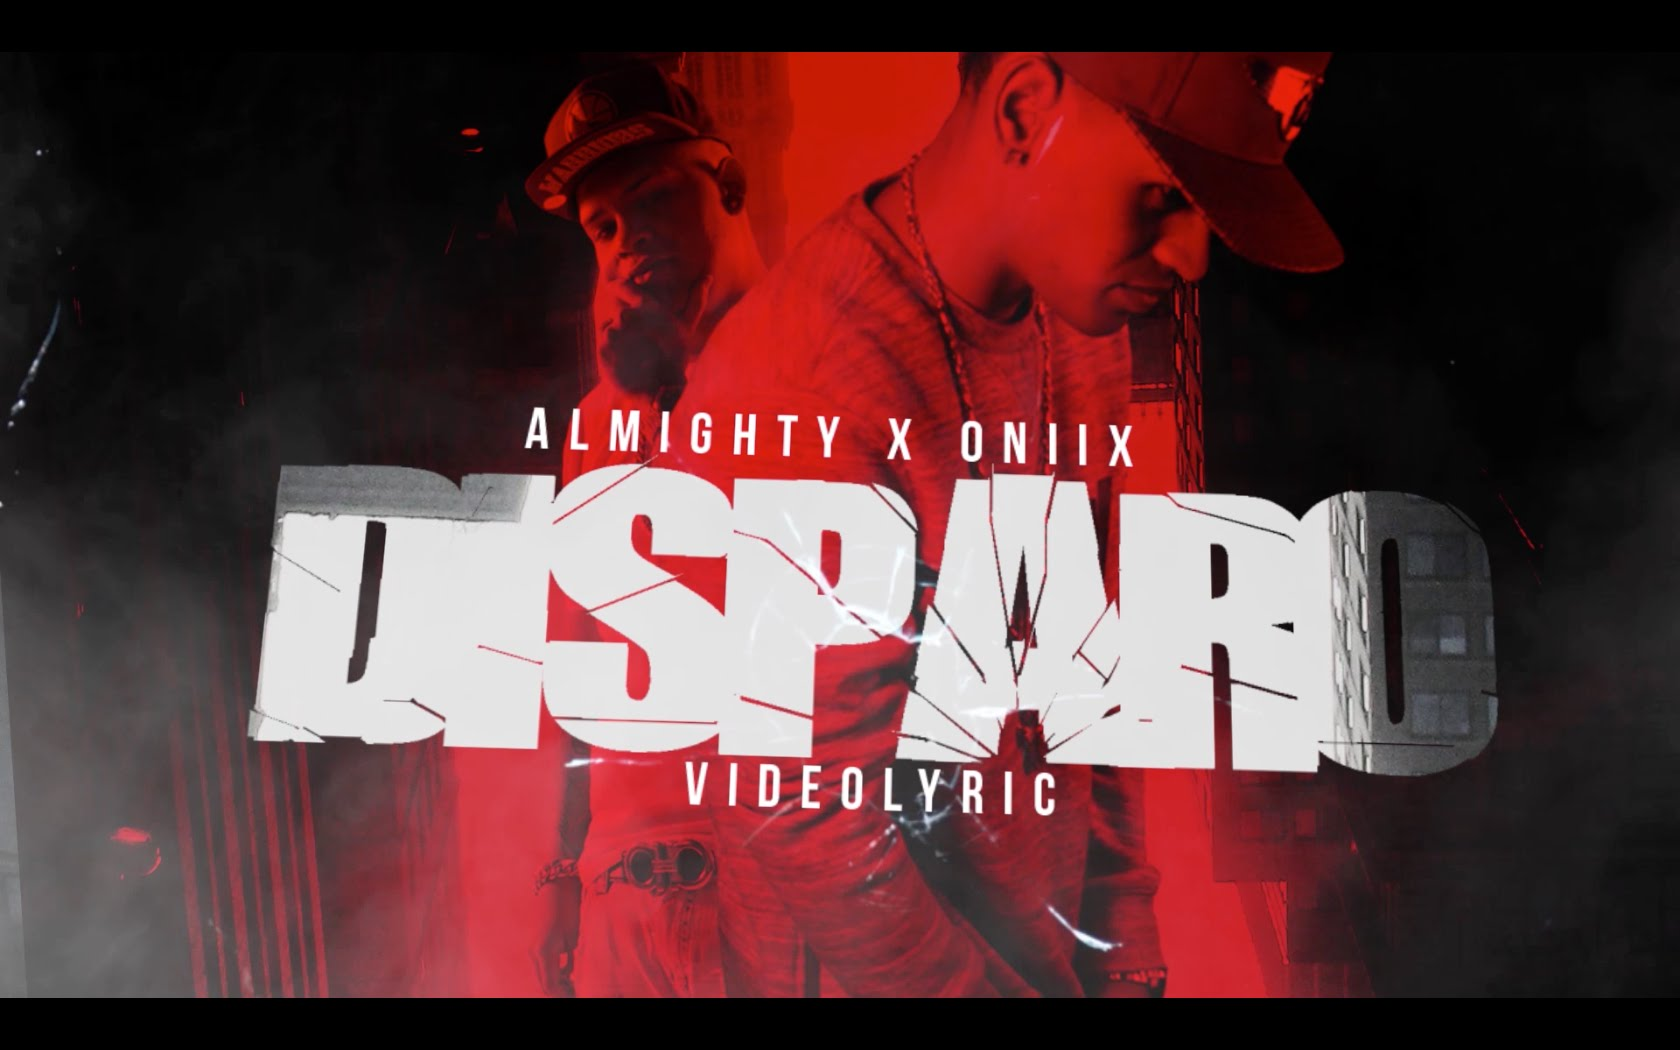 oniix ft almighty disparo video - Oniix Ft. Almighty – Disparo (Video Lyric)